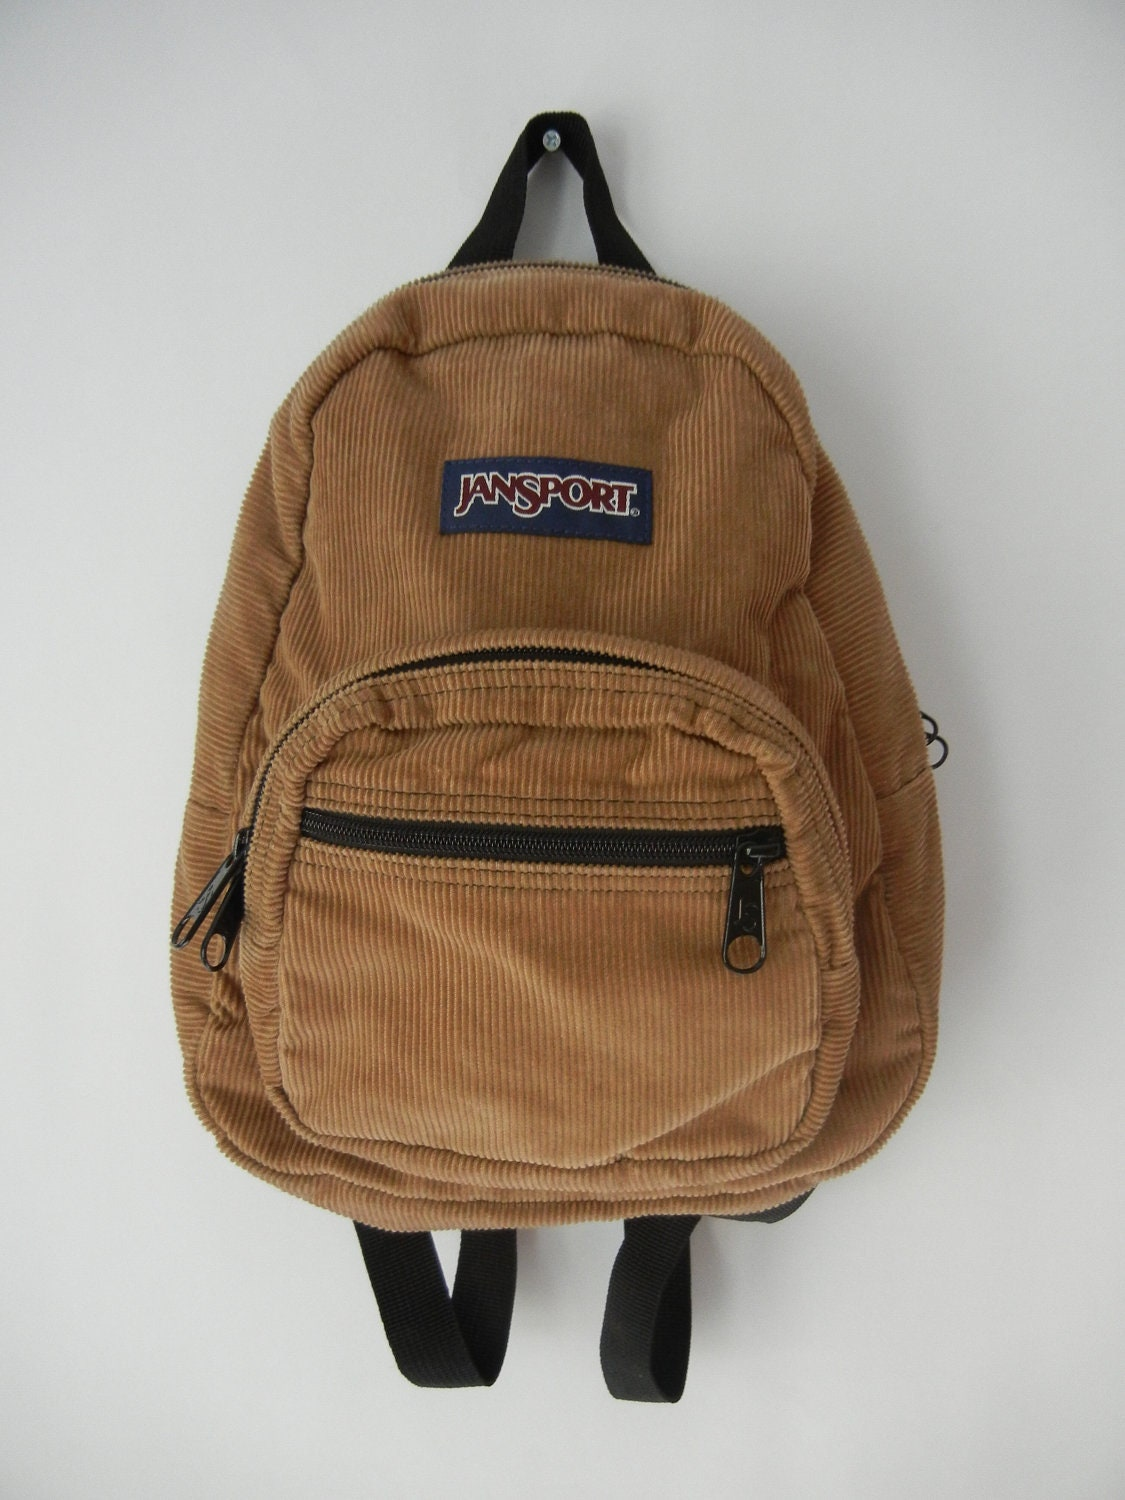 Jansport Mini Backpack Tan Corduroy Hipster 90's